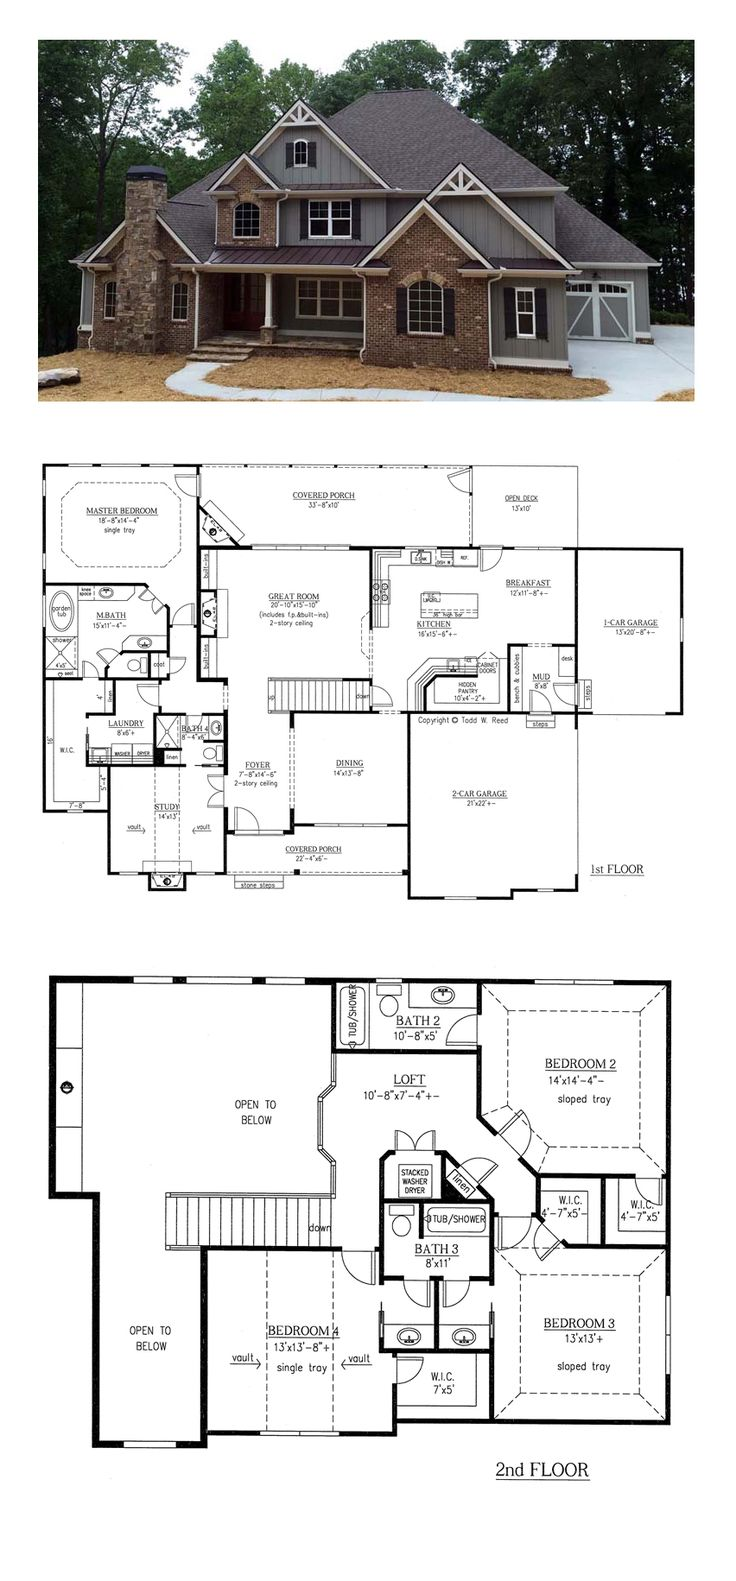 5 bedroom 3 bathroom house plans - Craftsman French Country Traditional House Plan 50263